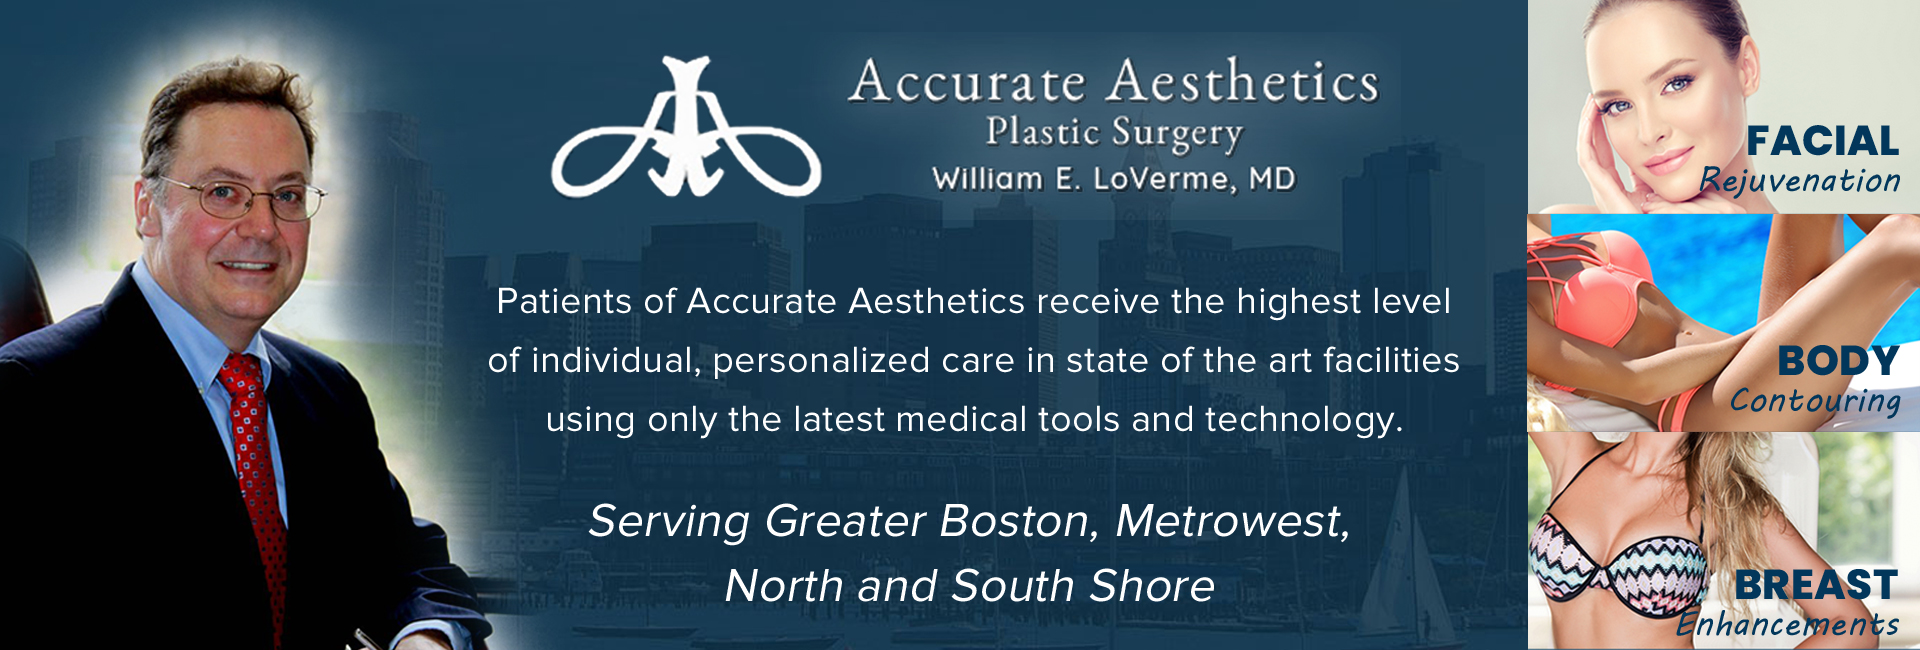 Accurate Aesthetics Plastic Surgery - William E. LoVerme, MD reviews   Plastic Surgeons at 1 Washington St #301 - Wellesley MA